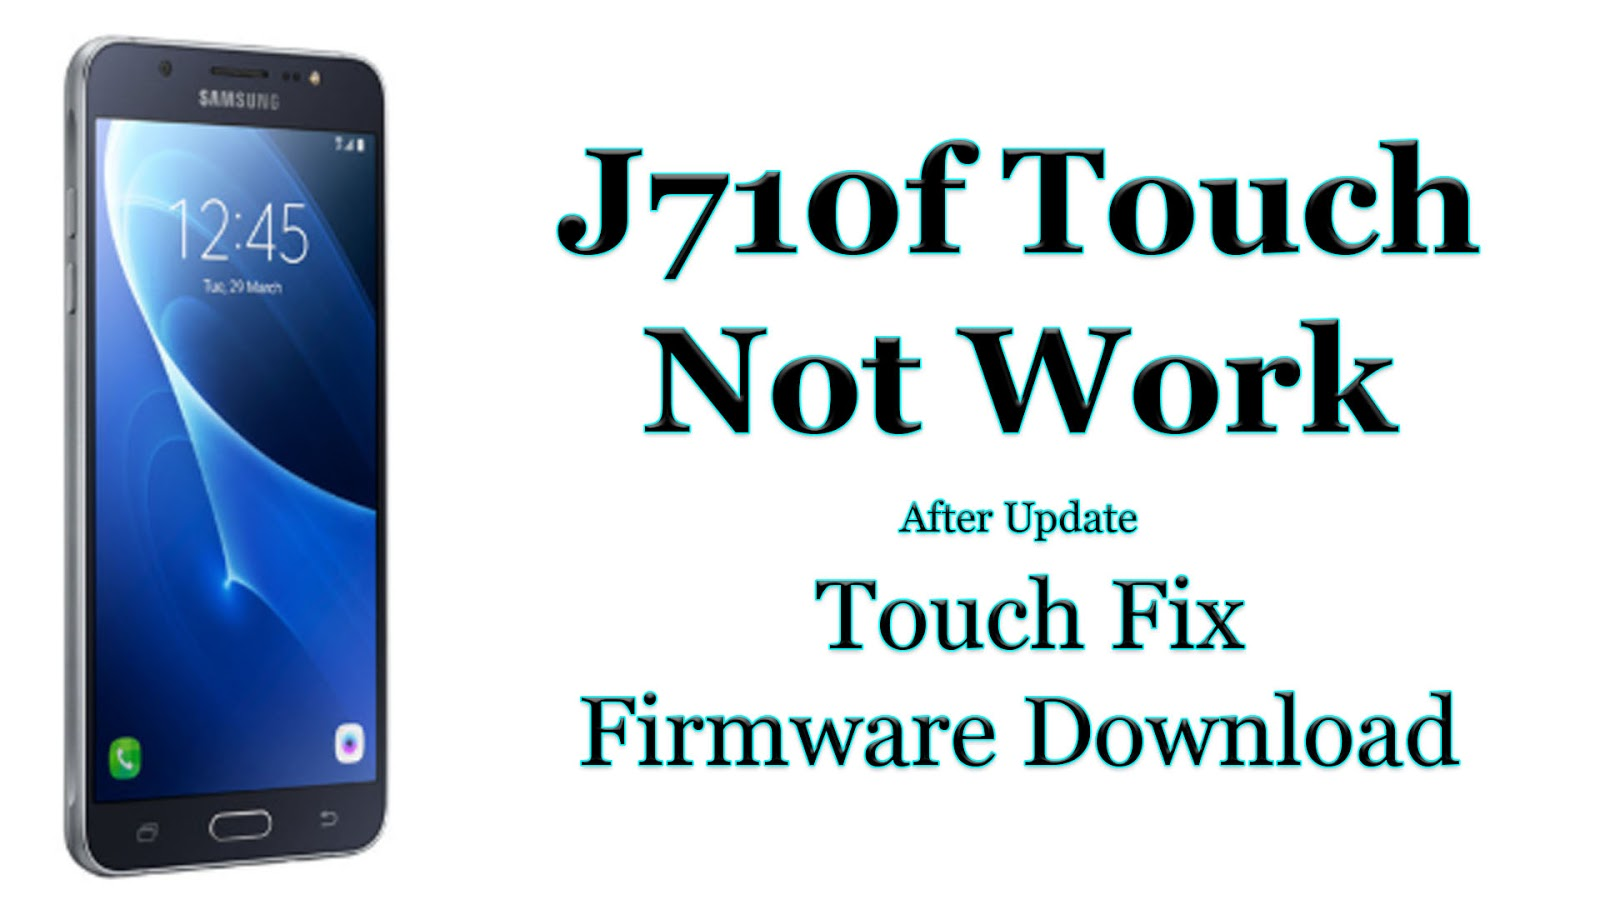 Samsung J710f touch Not working After Update 7 0 Solution - MrSolution